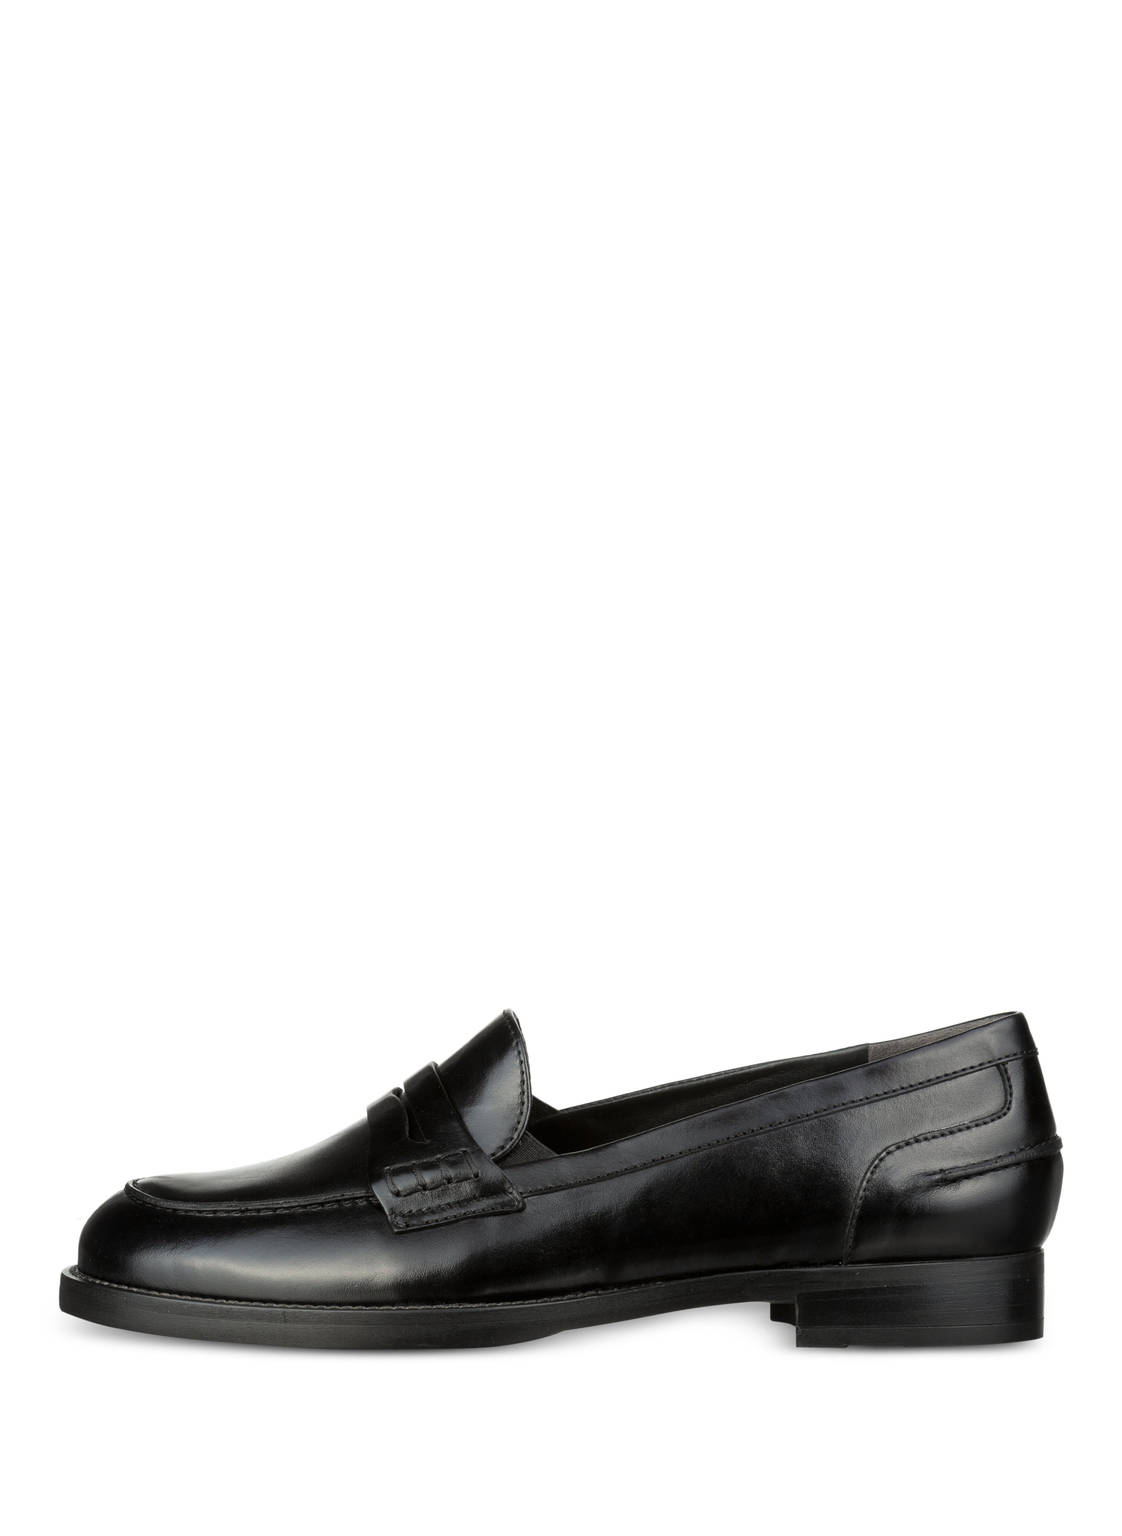 paul green Loafer schwarz